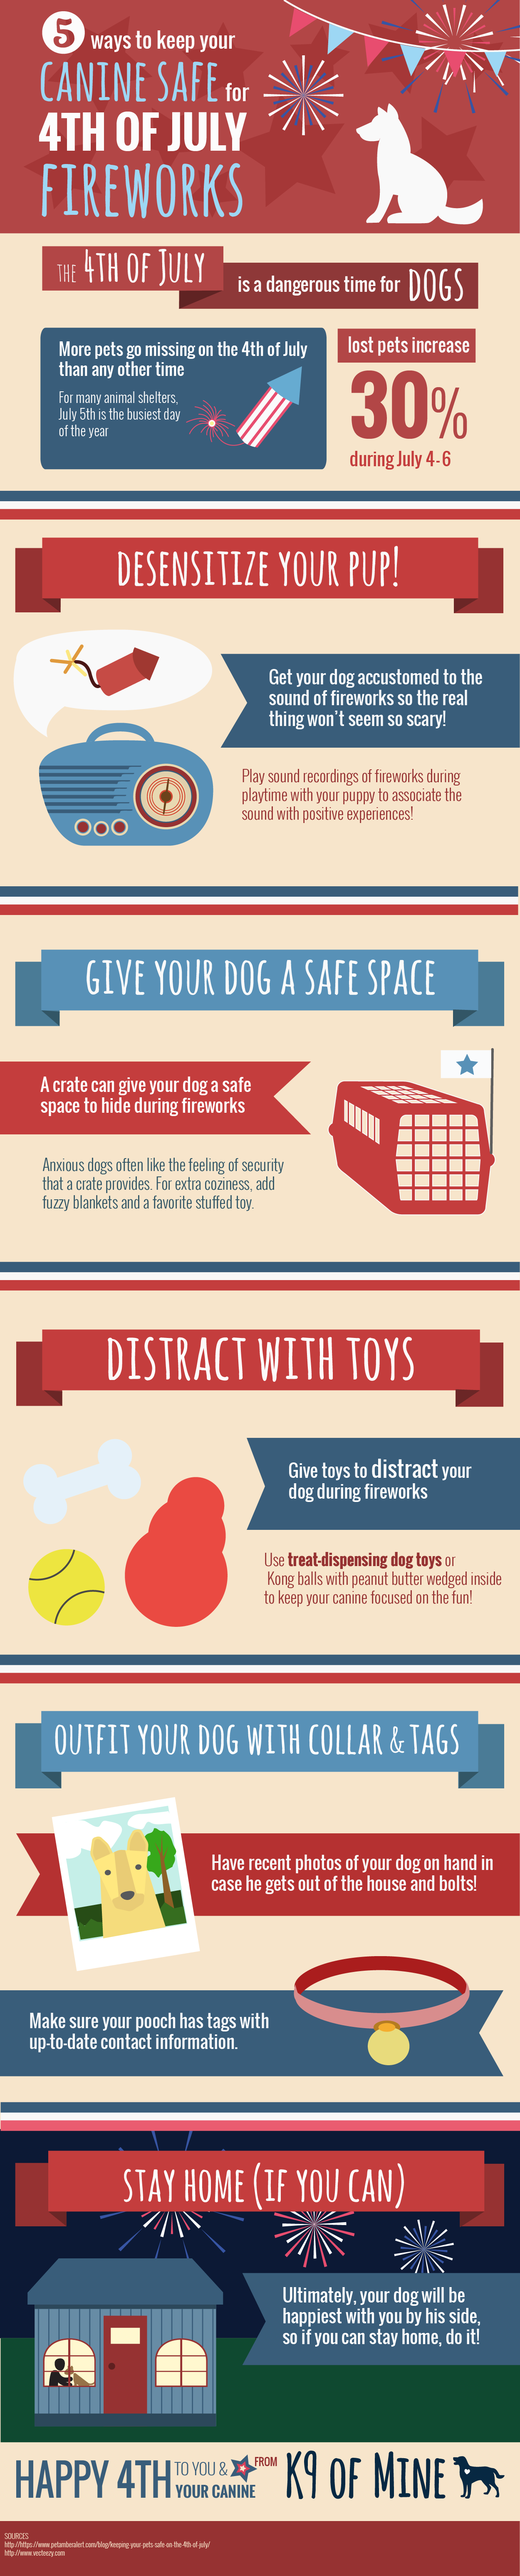 How to Keep Dogs Safe During 4th of July Fireworks